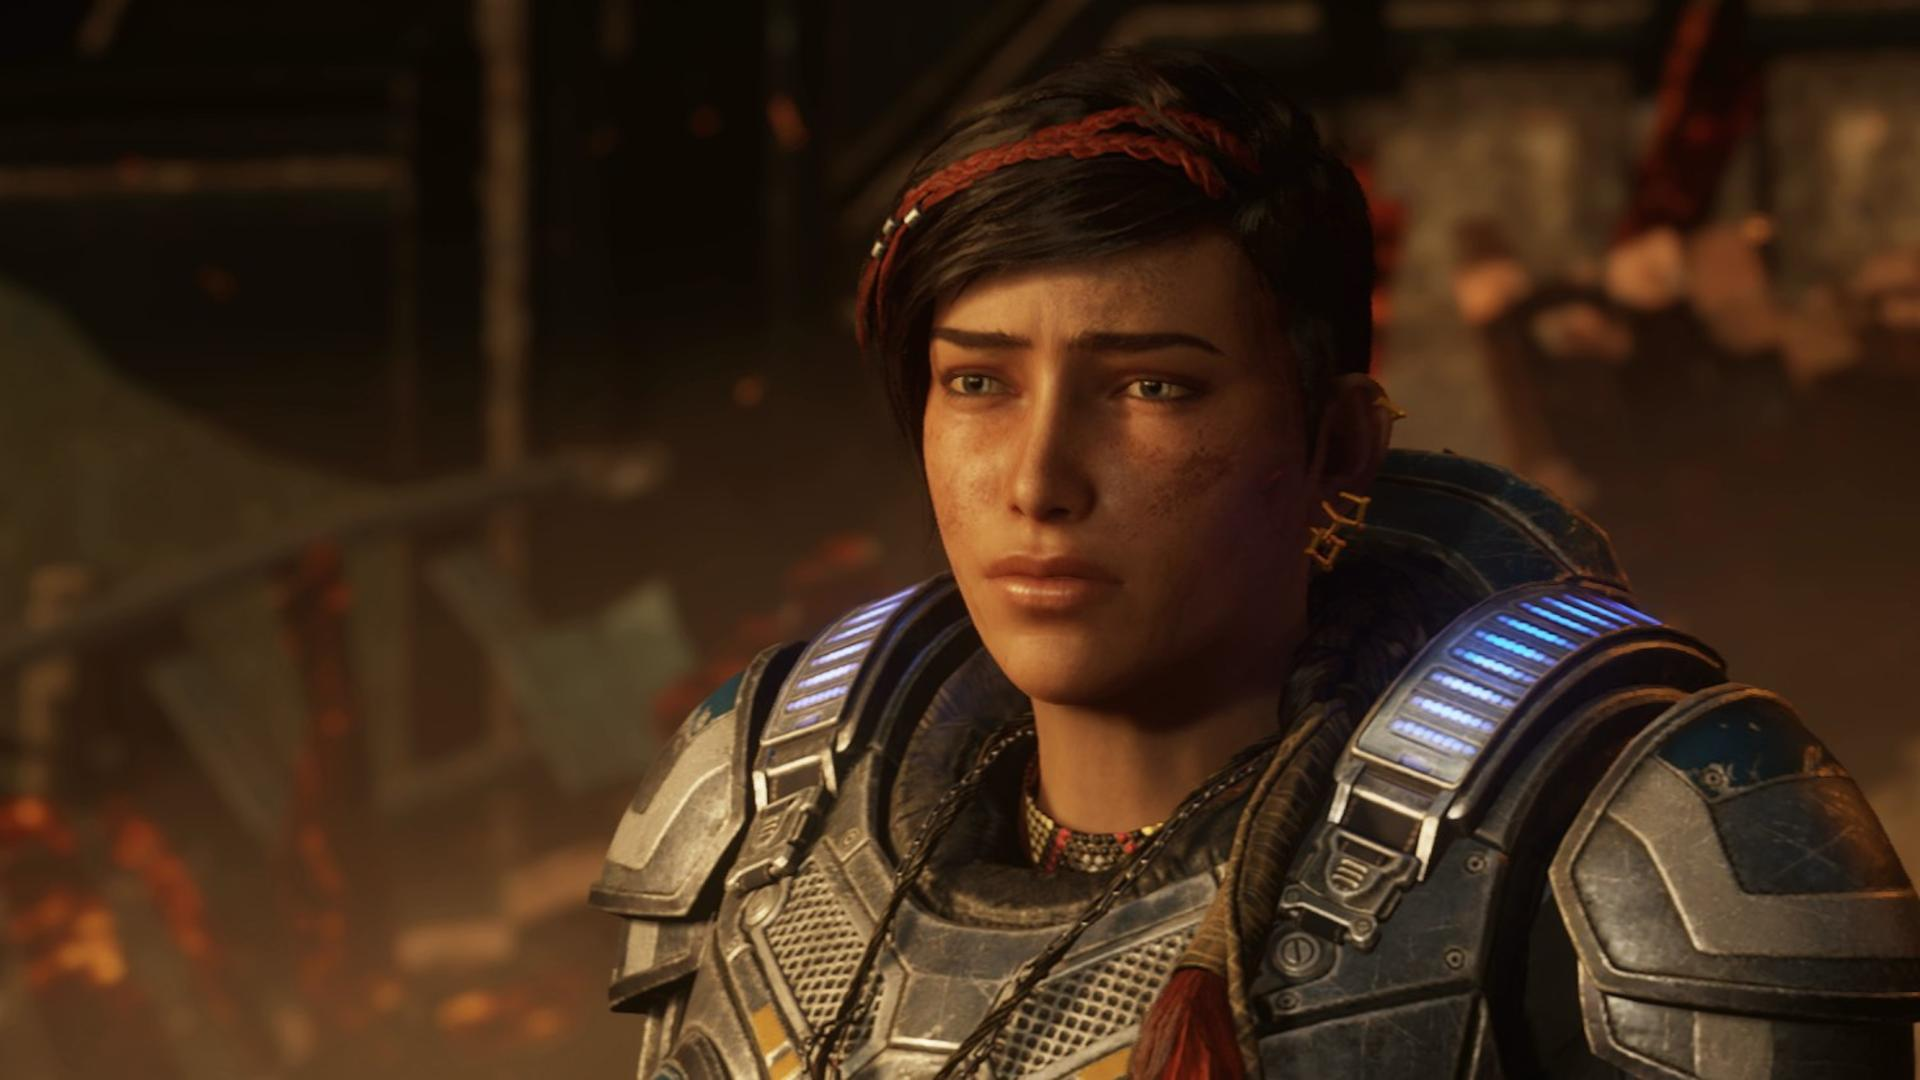 Kait Diaz, the first female lead in a Gears game